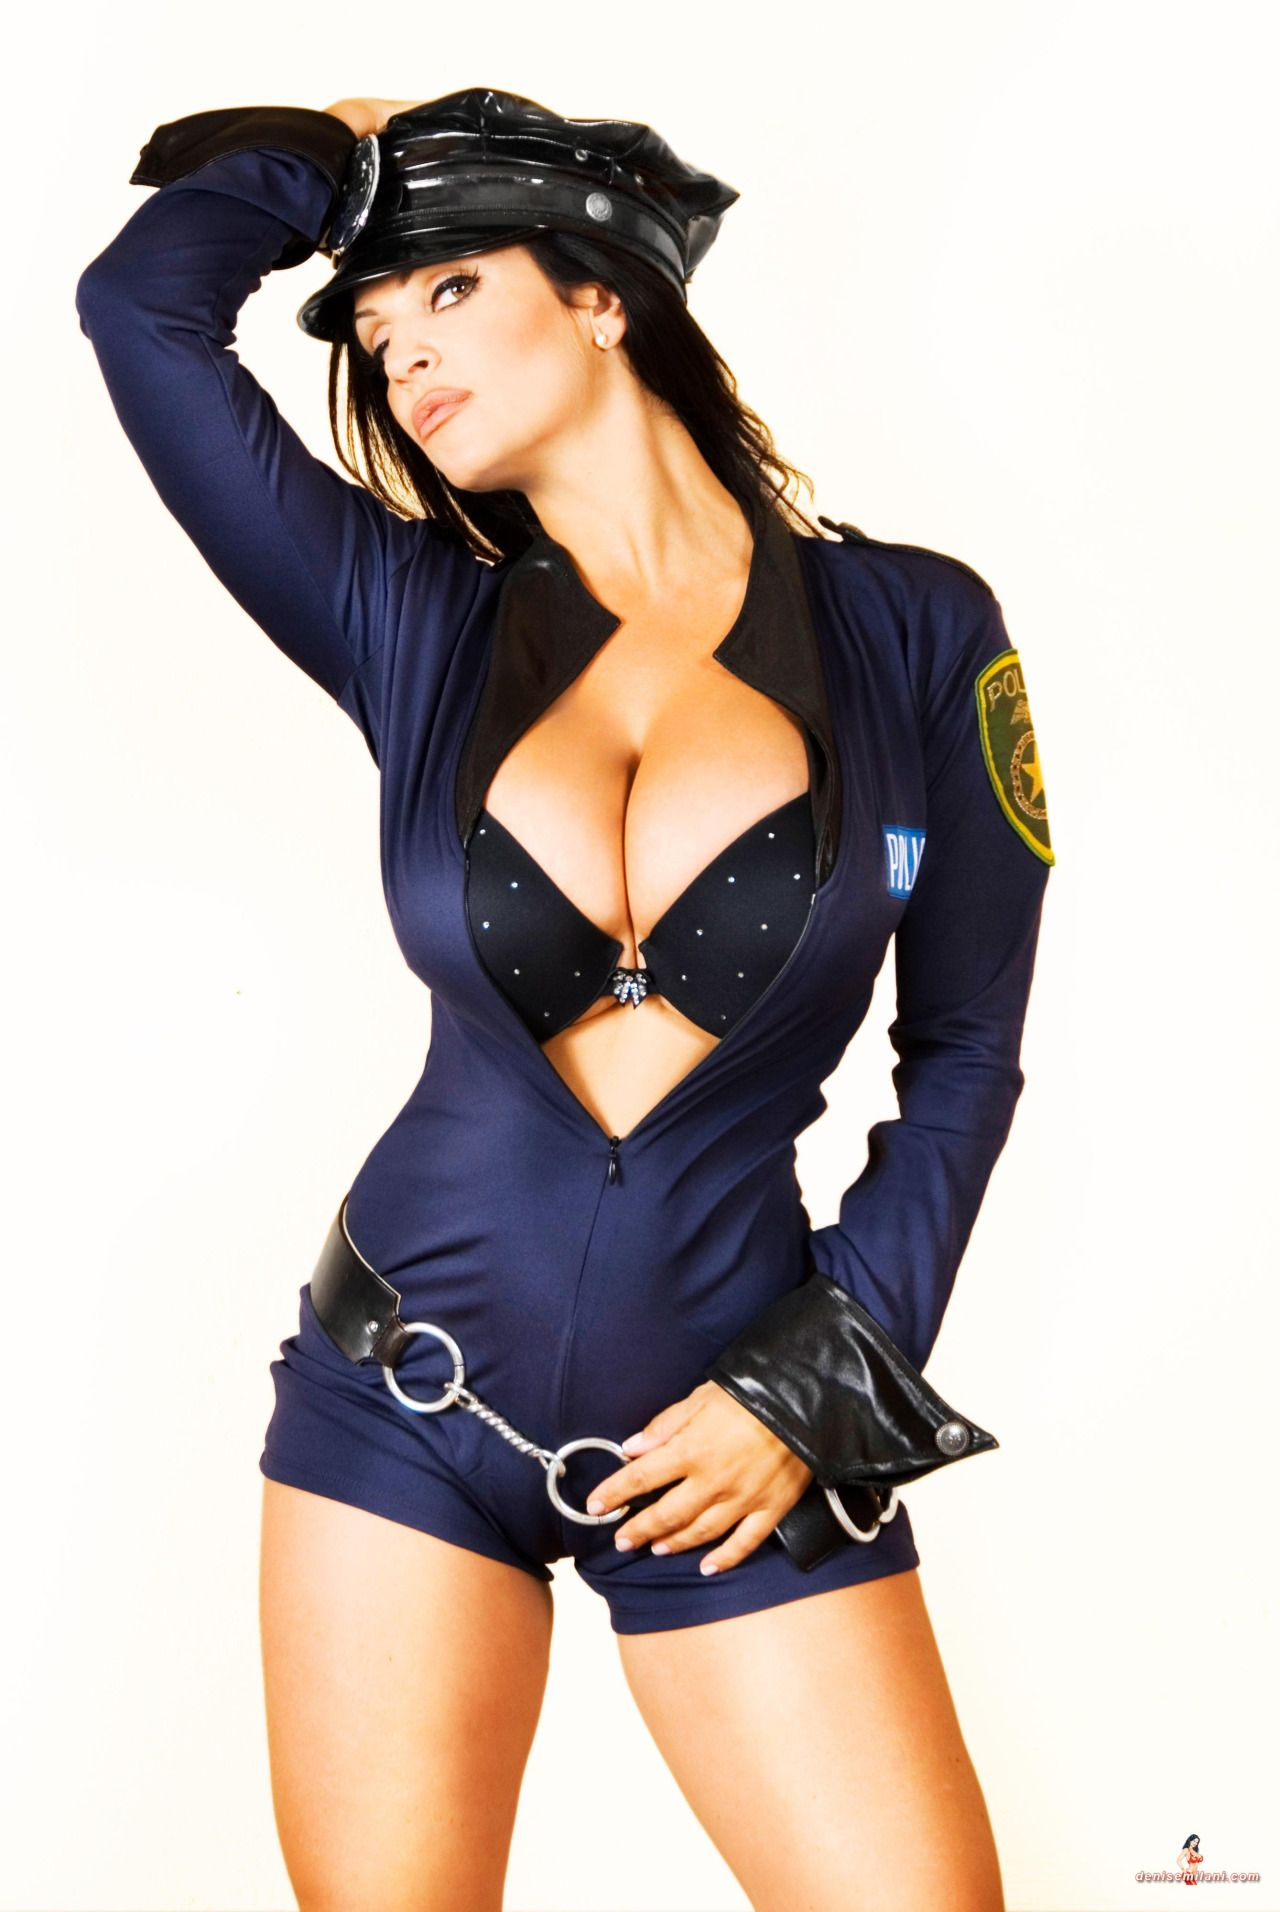 Chesty brunette Alison Taylor removing police uniform for nude photos № 1243283 загрузить